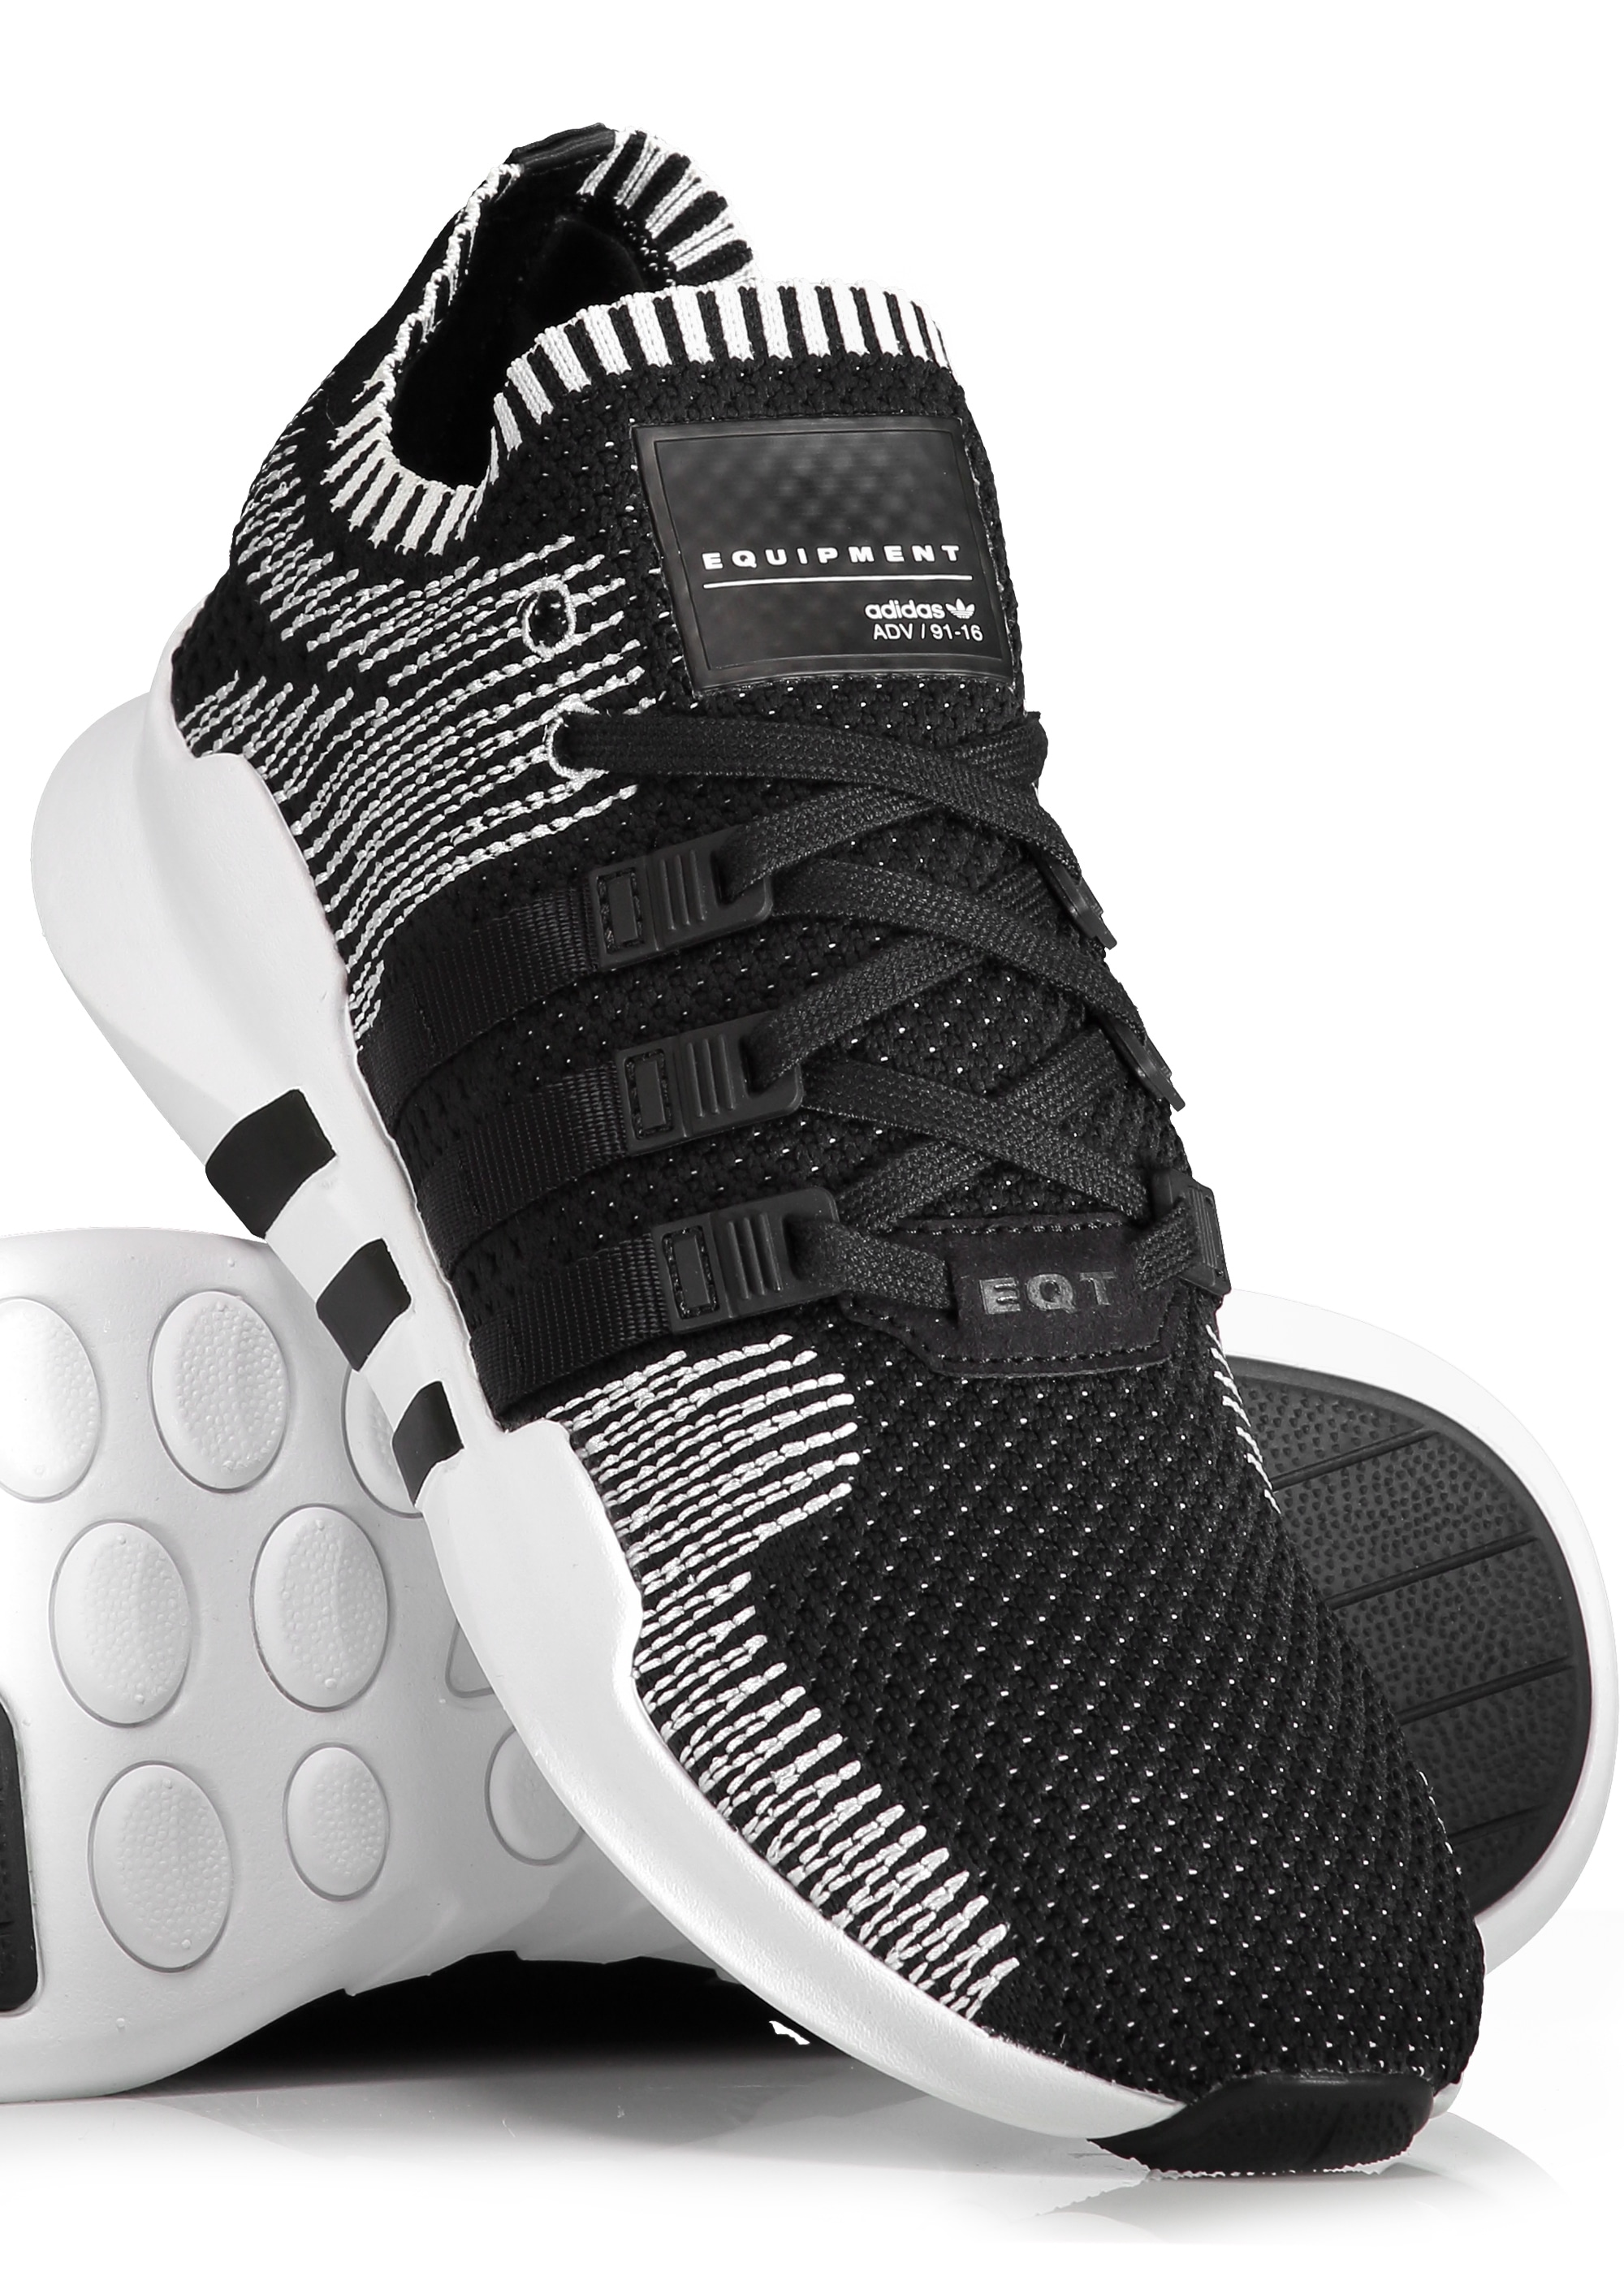 adidas originals footwear eqt support adv pk black. Black Bedroom Furniture Sets. Home Design Ideas